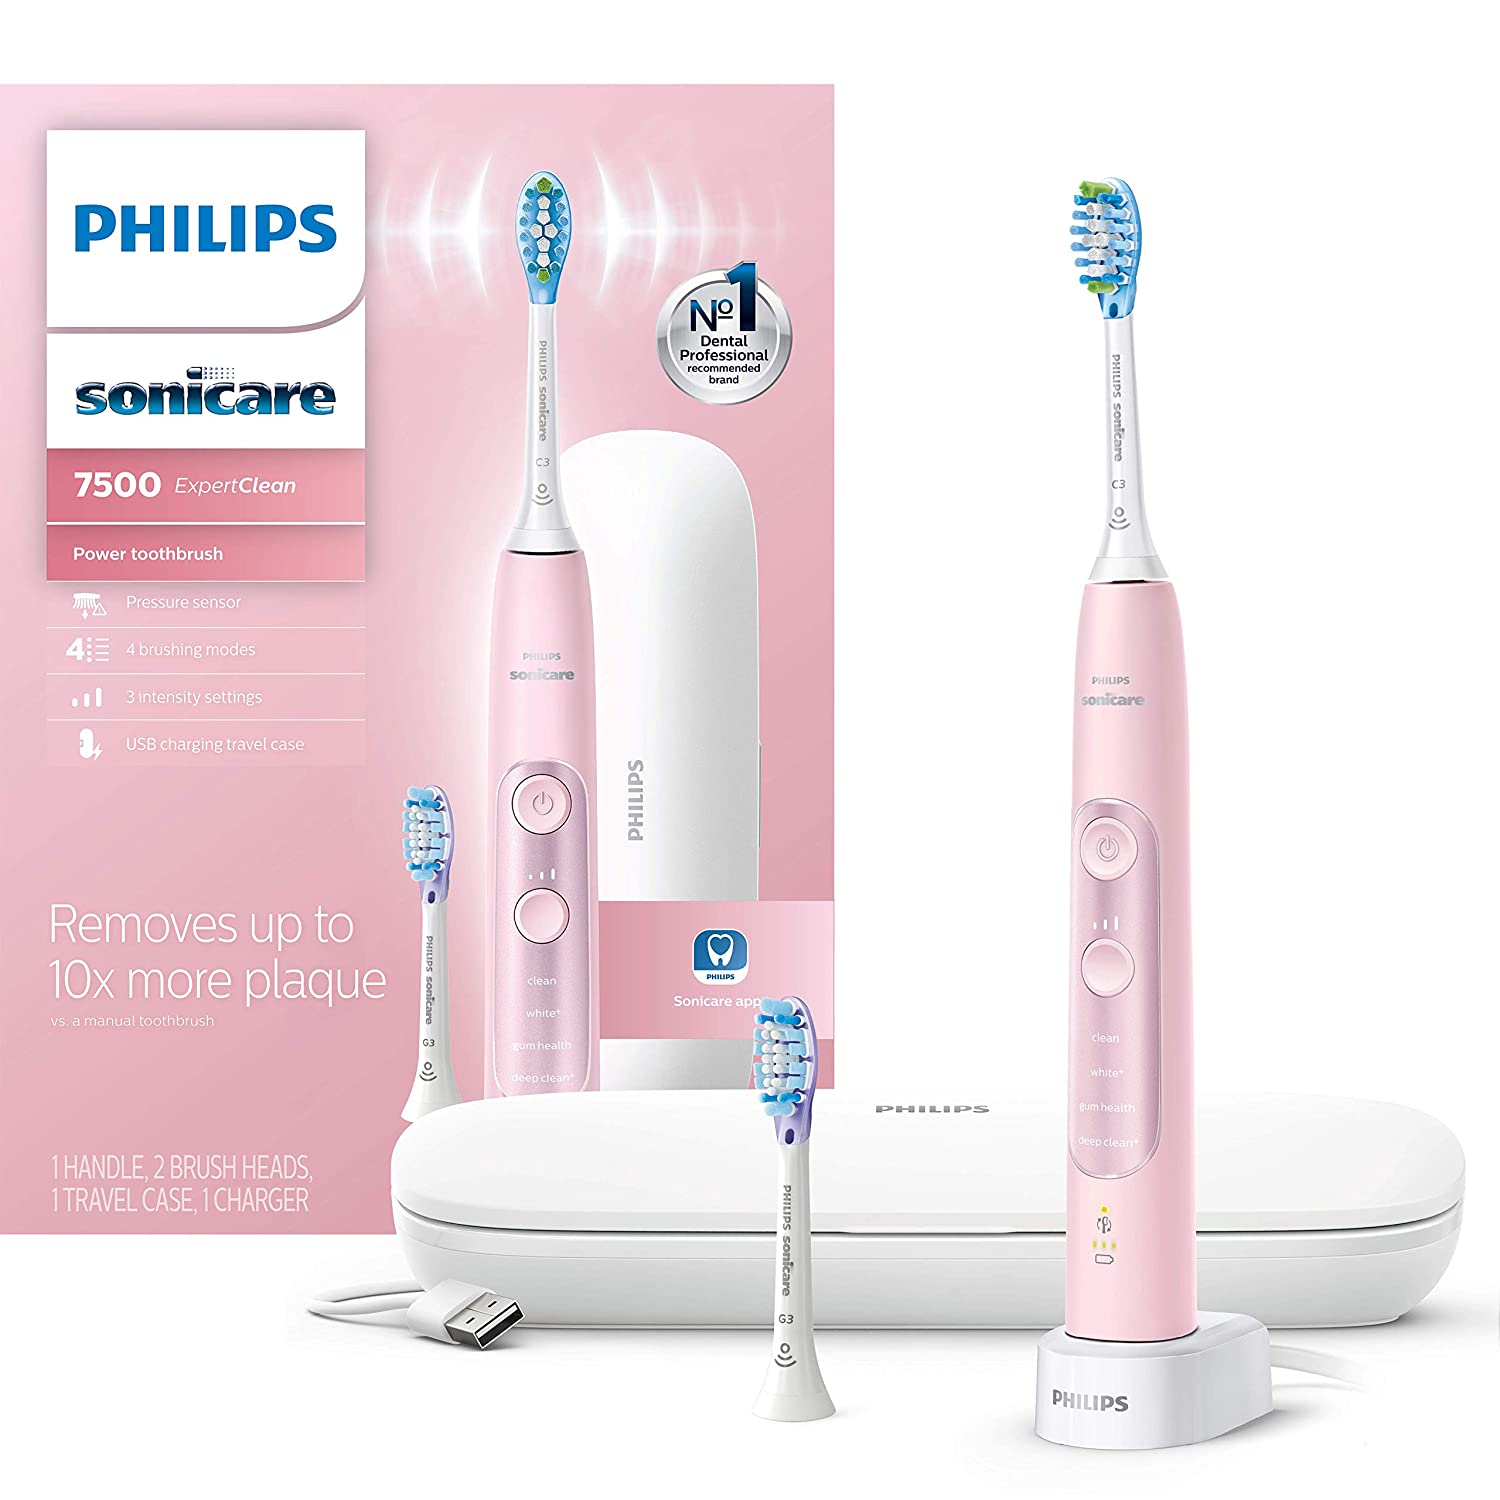 Philips Sonicare ExpertClean 7500 Bluetooth Rechargeable Electric Toothbrush Pink HX9690/07